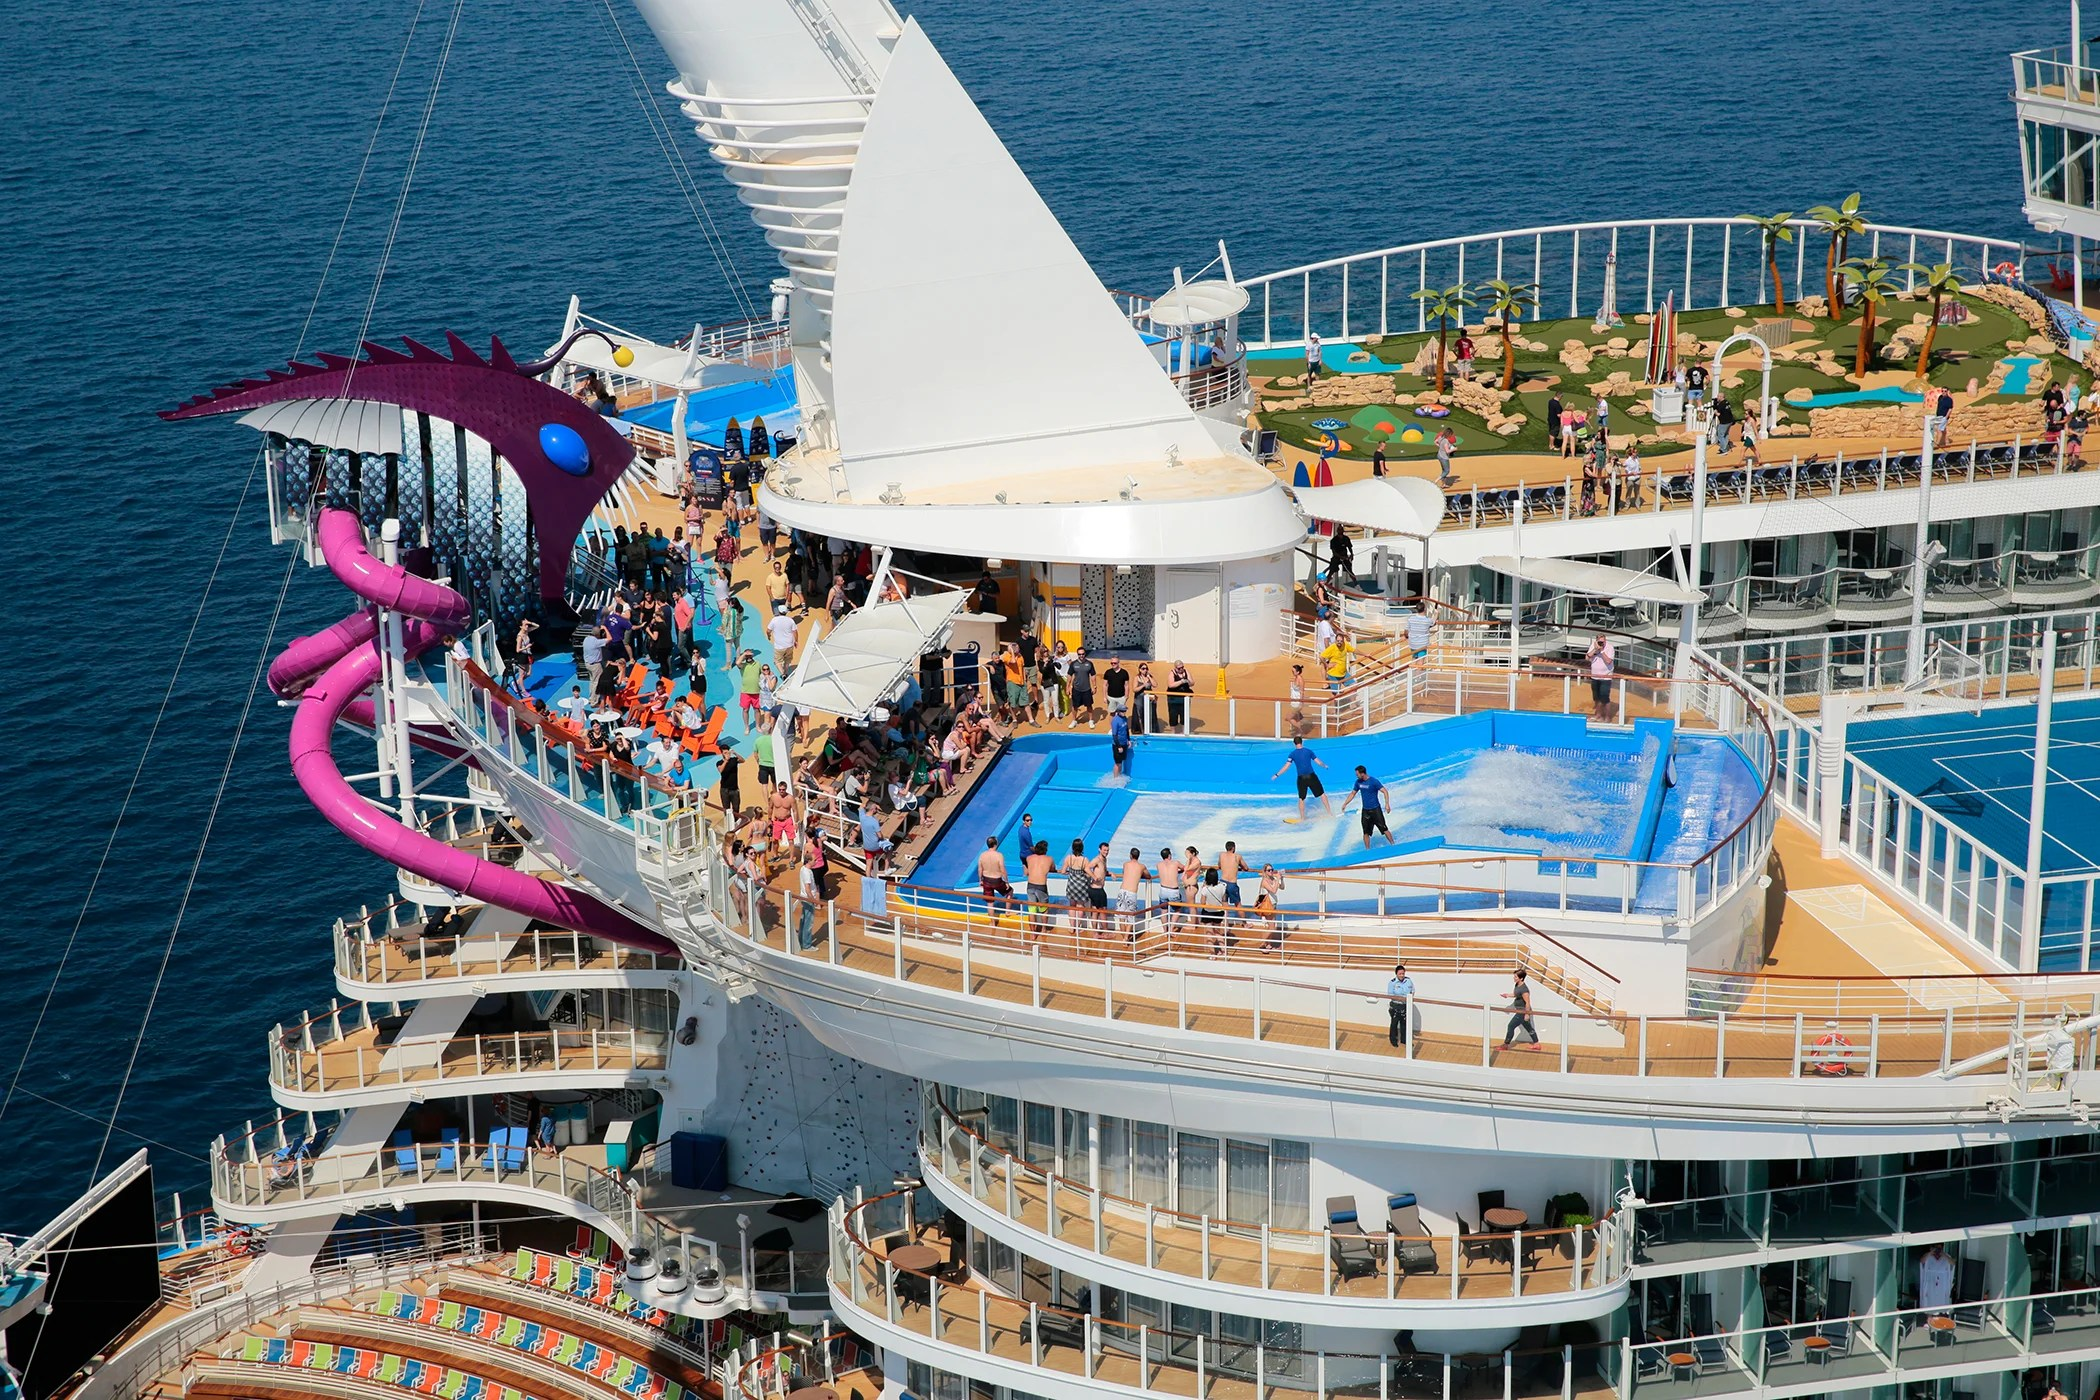 Steaks Galore & Skydiving: The Craziest Attractions You'll Find On A Cruise - cover